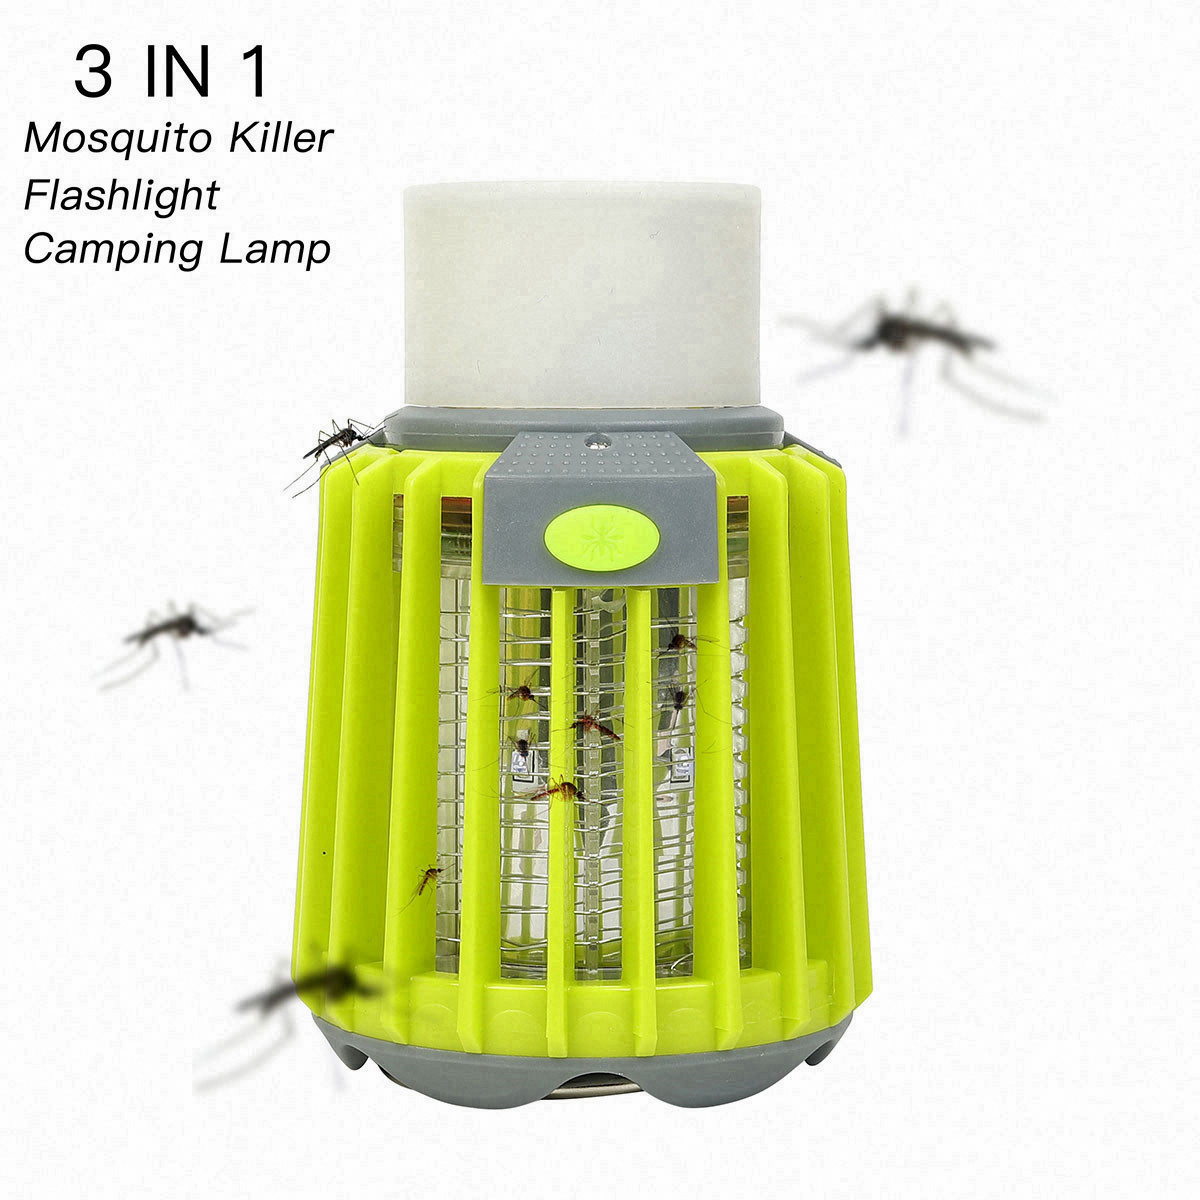 Repellents 2019 Usb Led Electric Mosquito Killer Lamp Insect Trap Bug Fly Catcher Non-toxic Chemical-free No Radiation Pest Control Skillful Manufacture